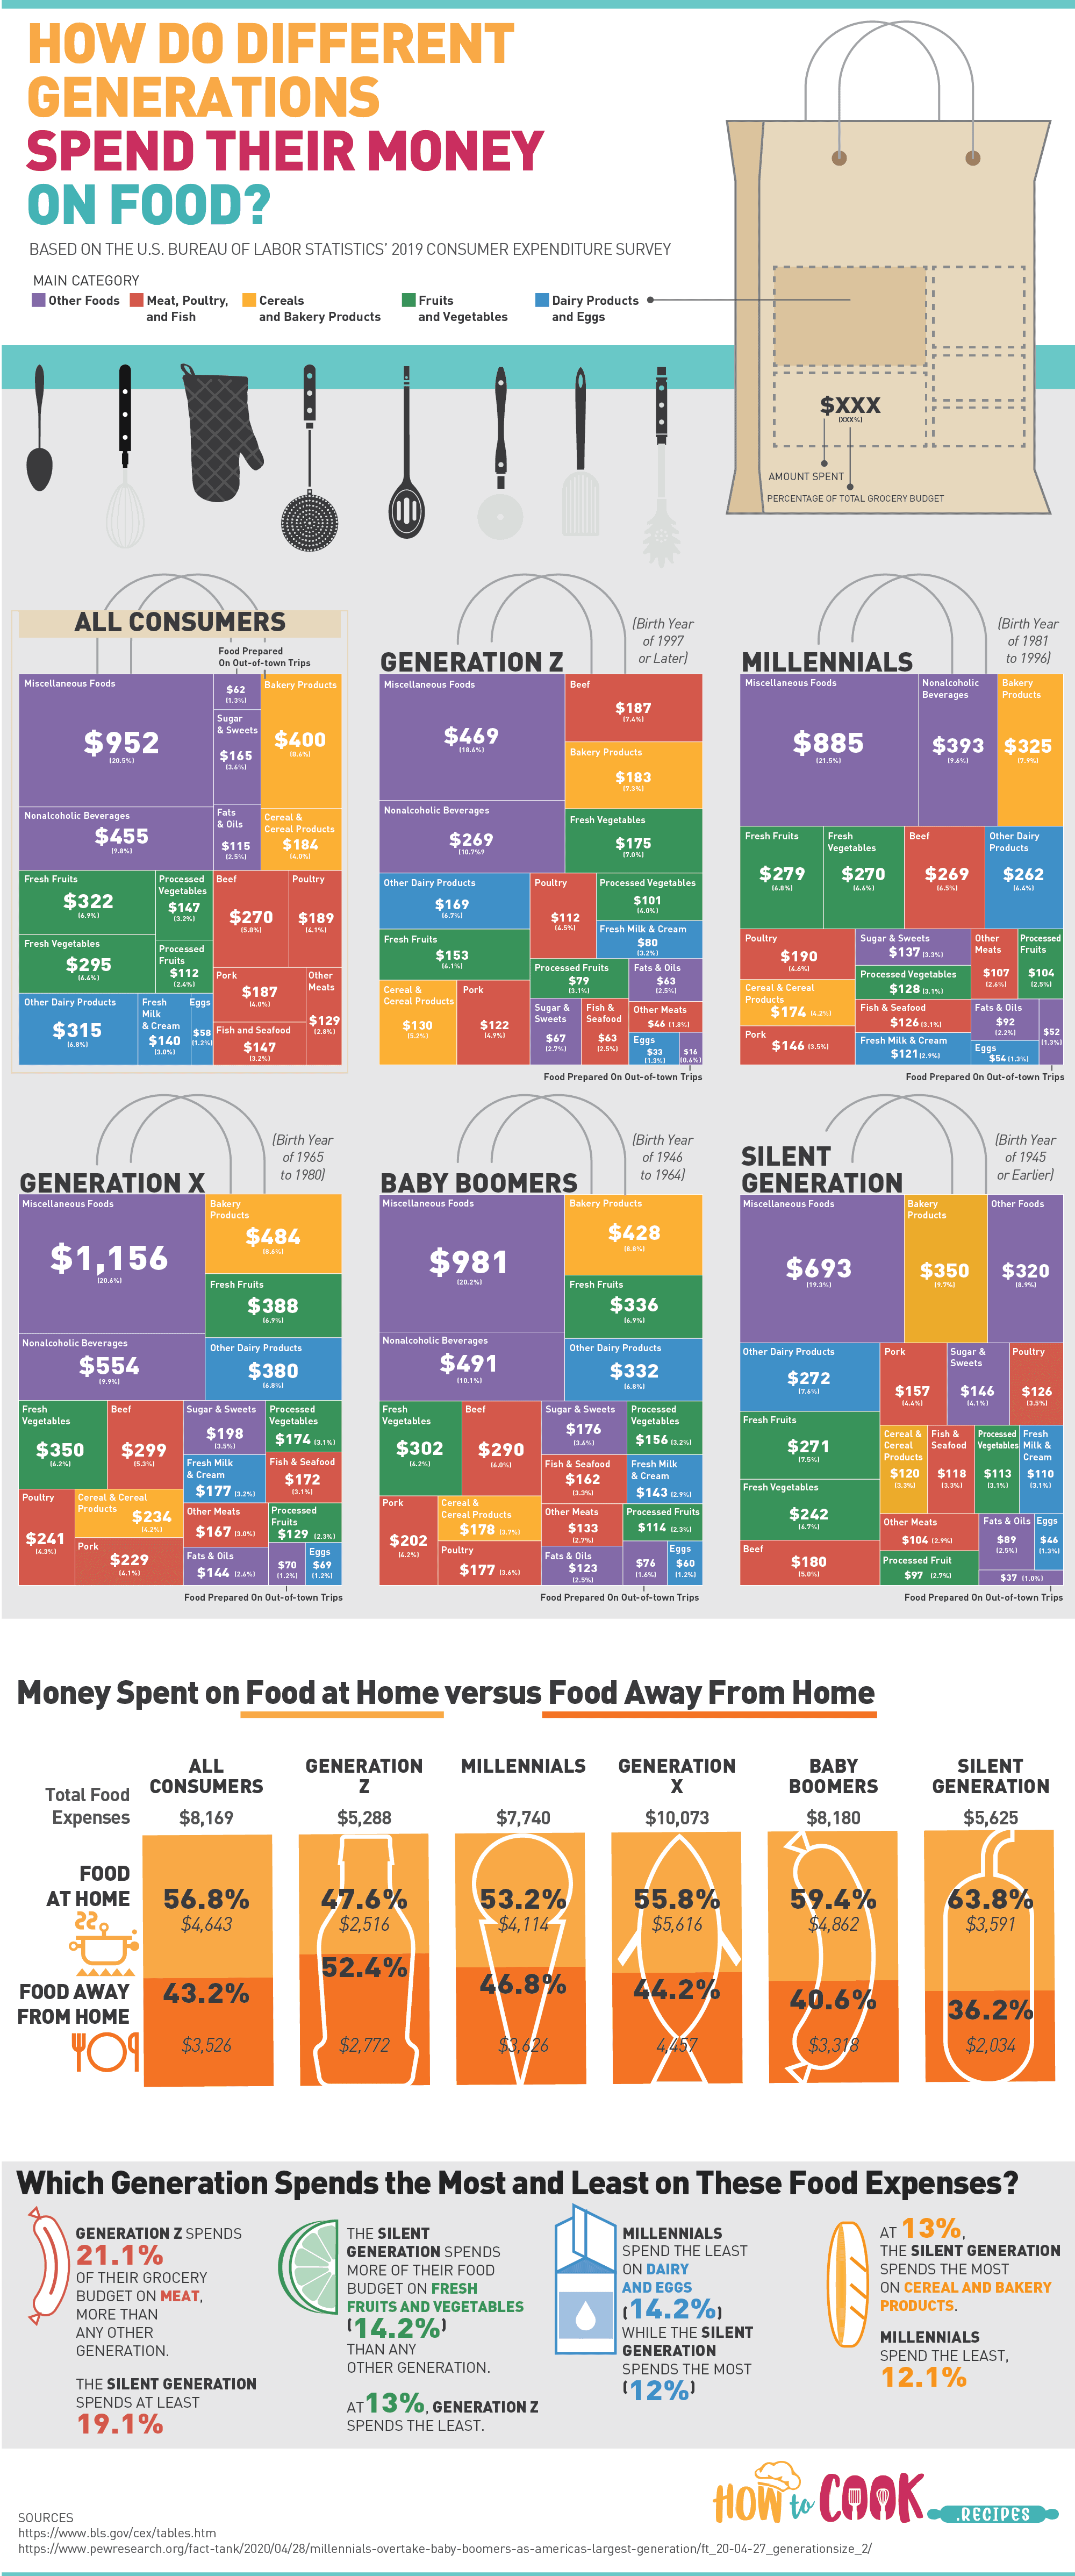 This is How Different Generations Spend Their Money on Food